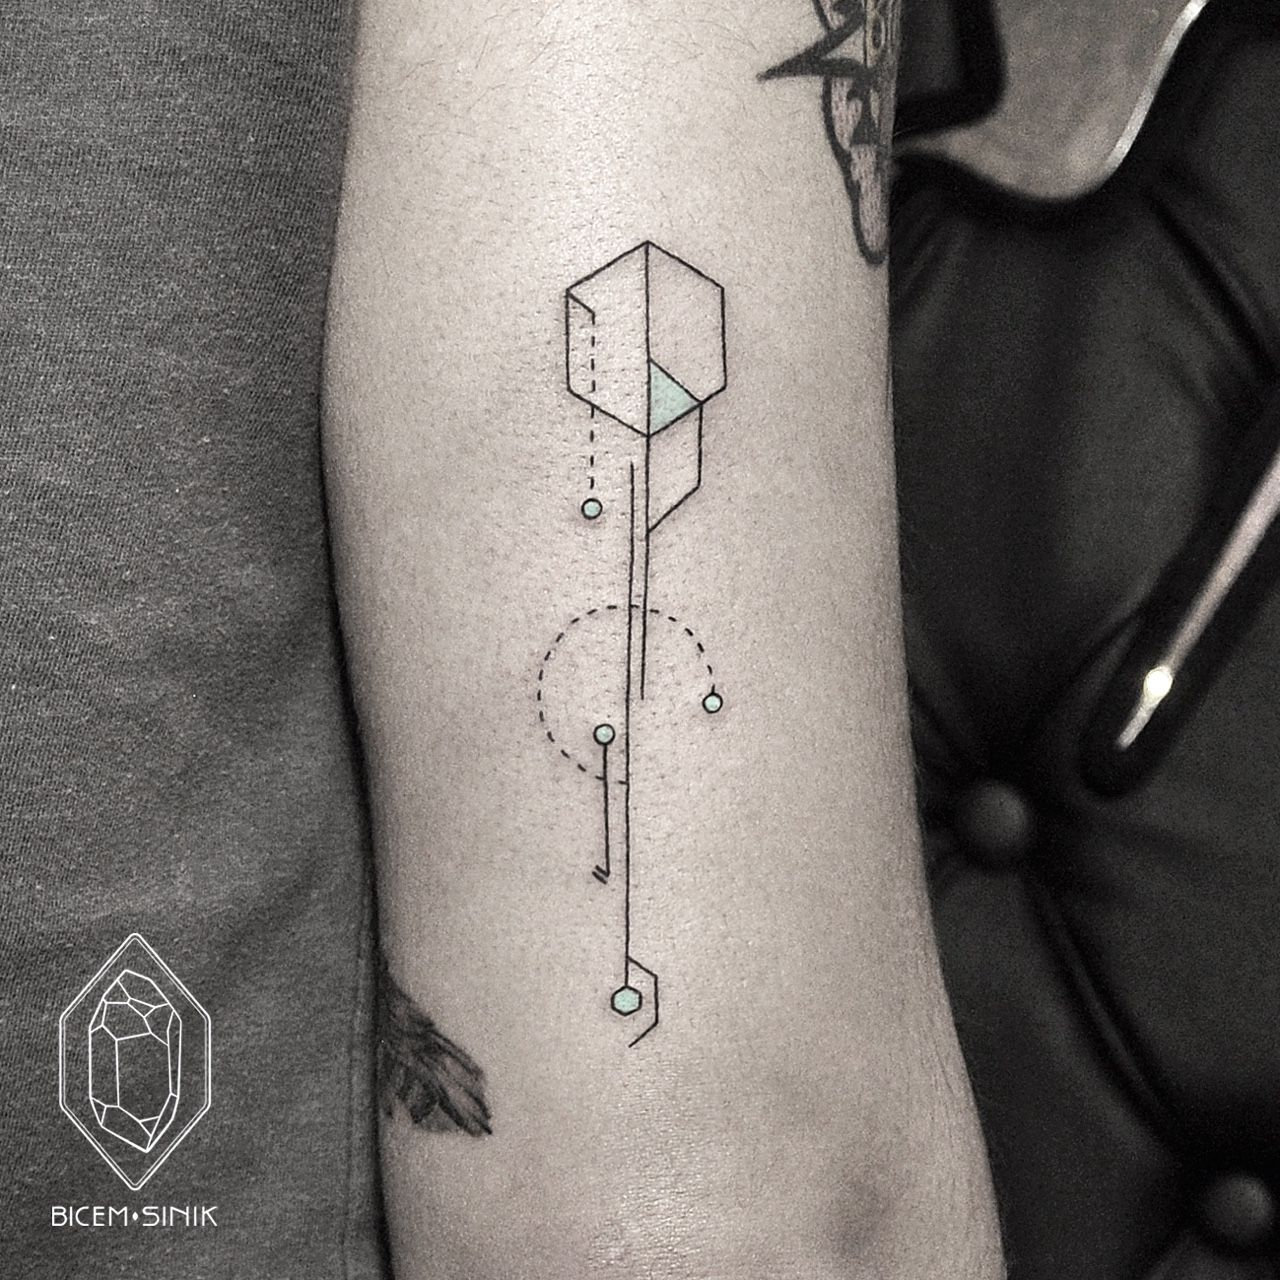 Pin By Tae S Yang On Tattoo Ideas Geometric Tattoo Modern Tattoos Tattoos